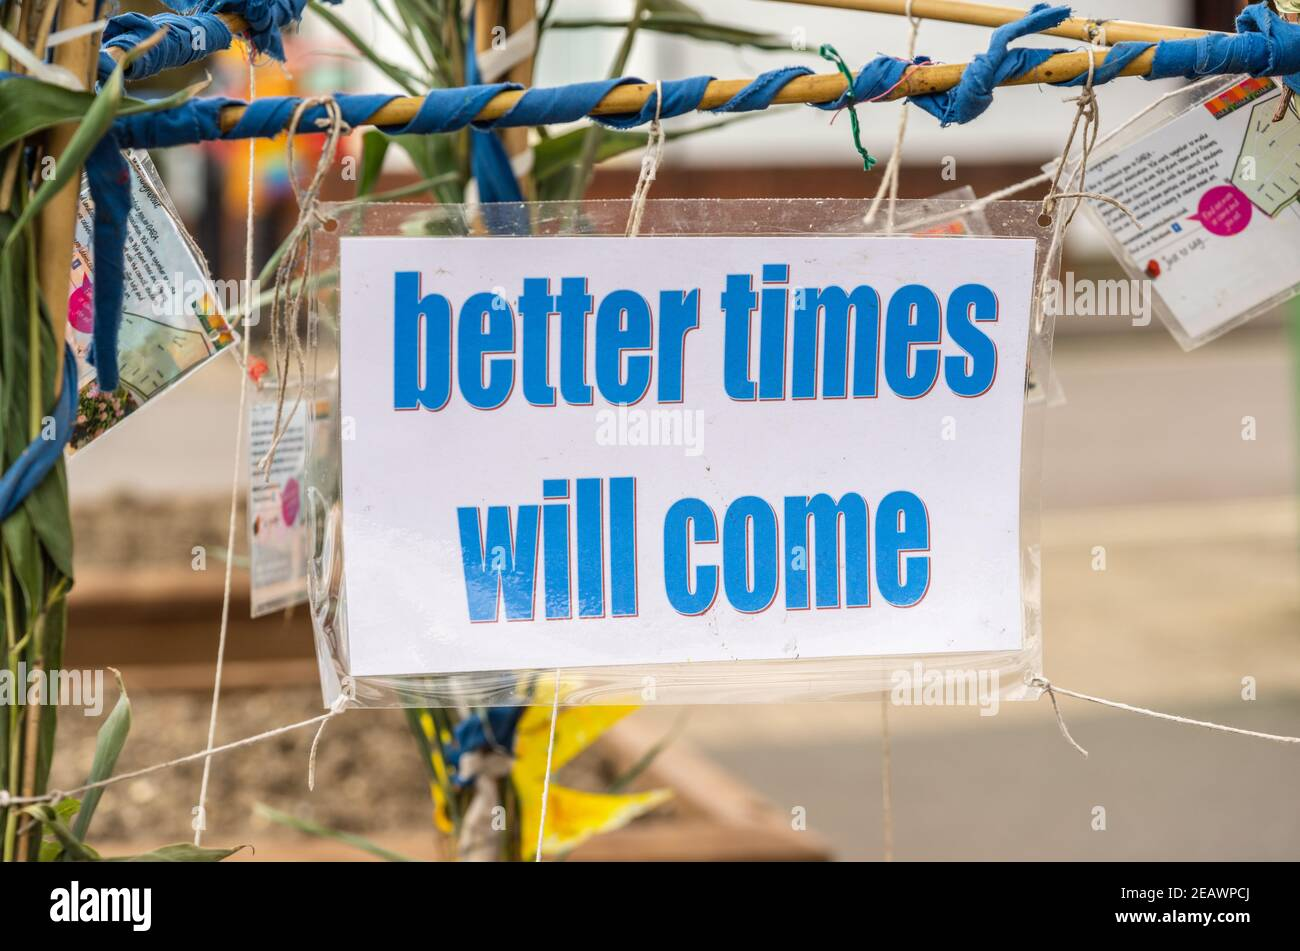 a-laminated-sign-saying-better-times-will-come-in-a-residential-area-to-instil-positivity-during-the-ongoing-covid-19-lockdown-southampton-uk-2EAWPCJ.jpg